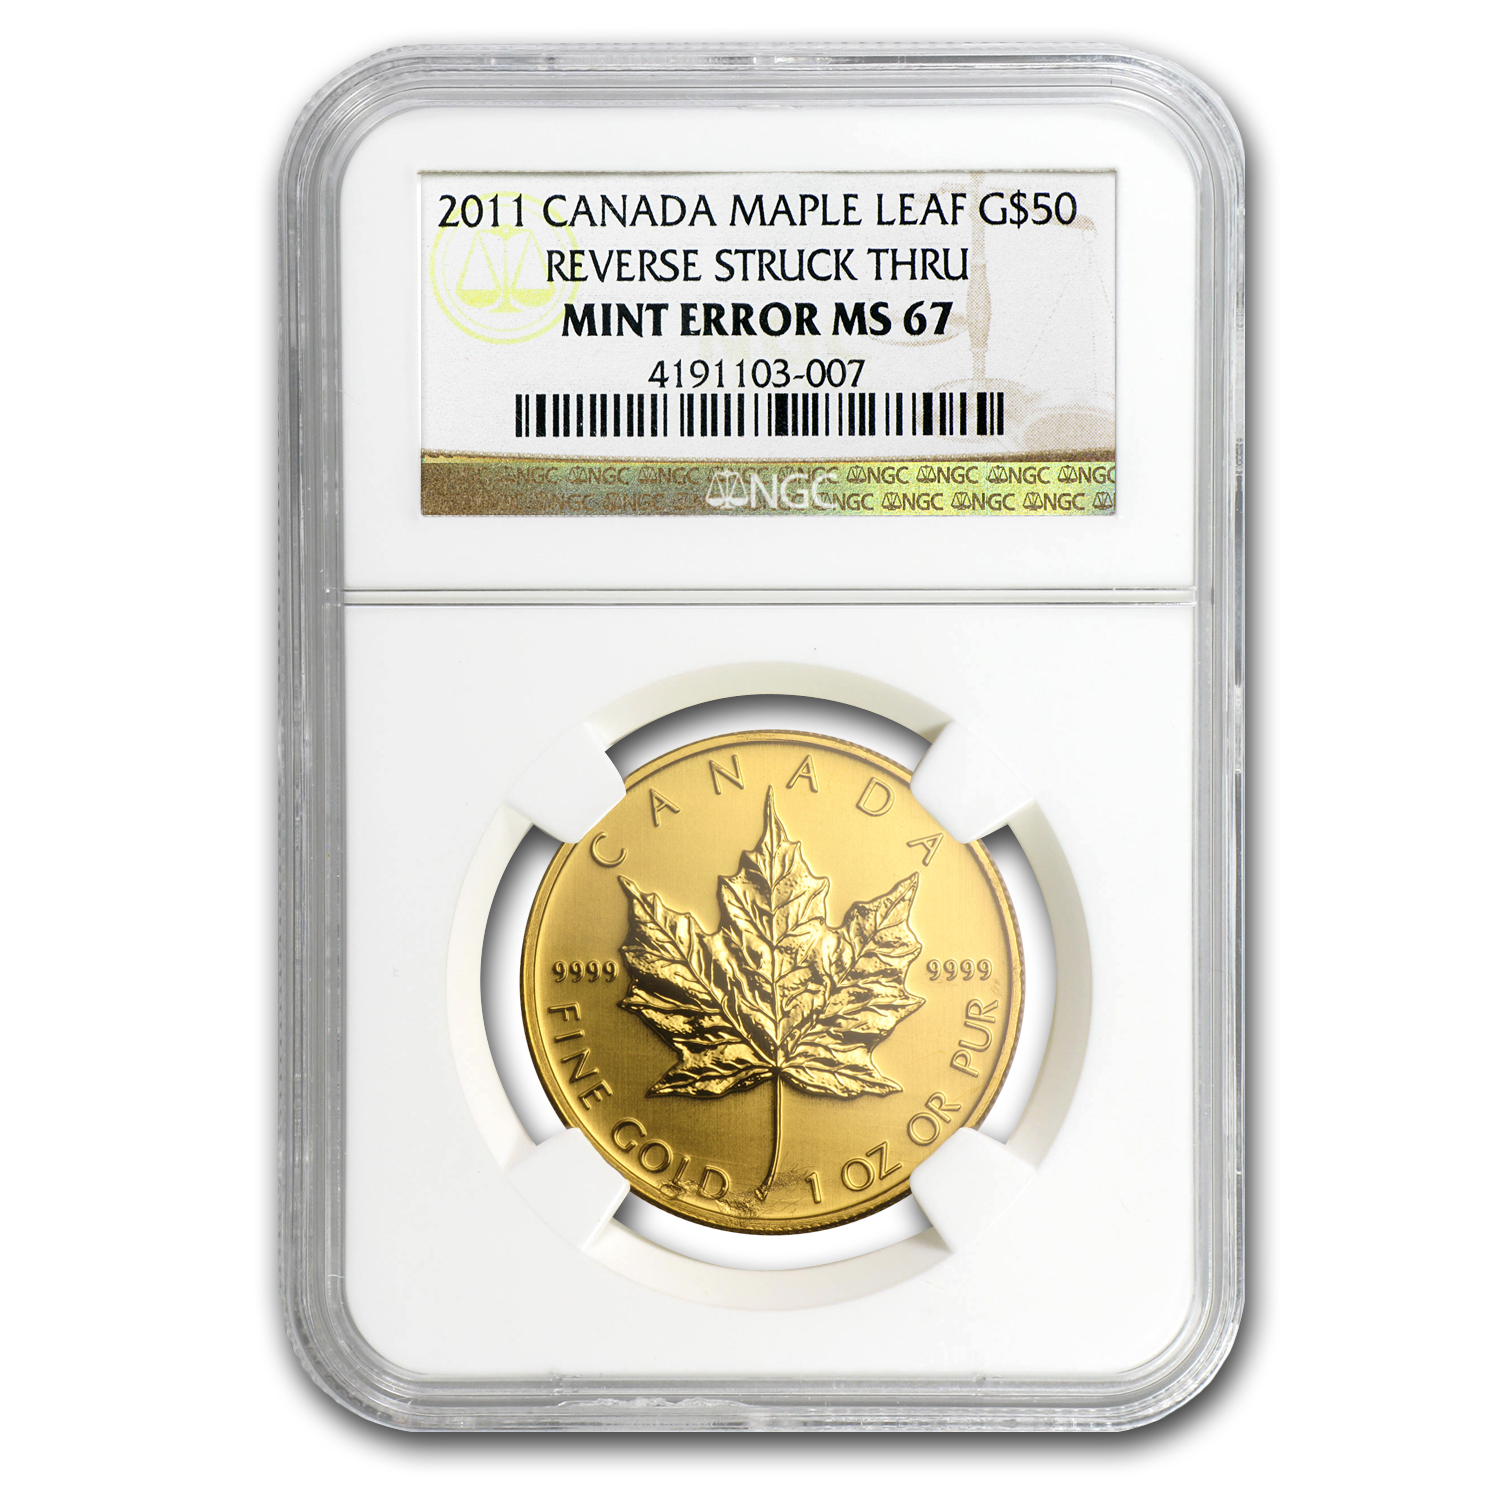 2011 Canada 1 oz Gold Maple Leaf MS-67 NGC (Mint Error)